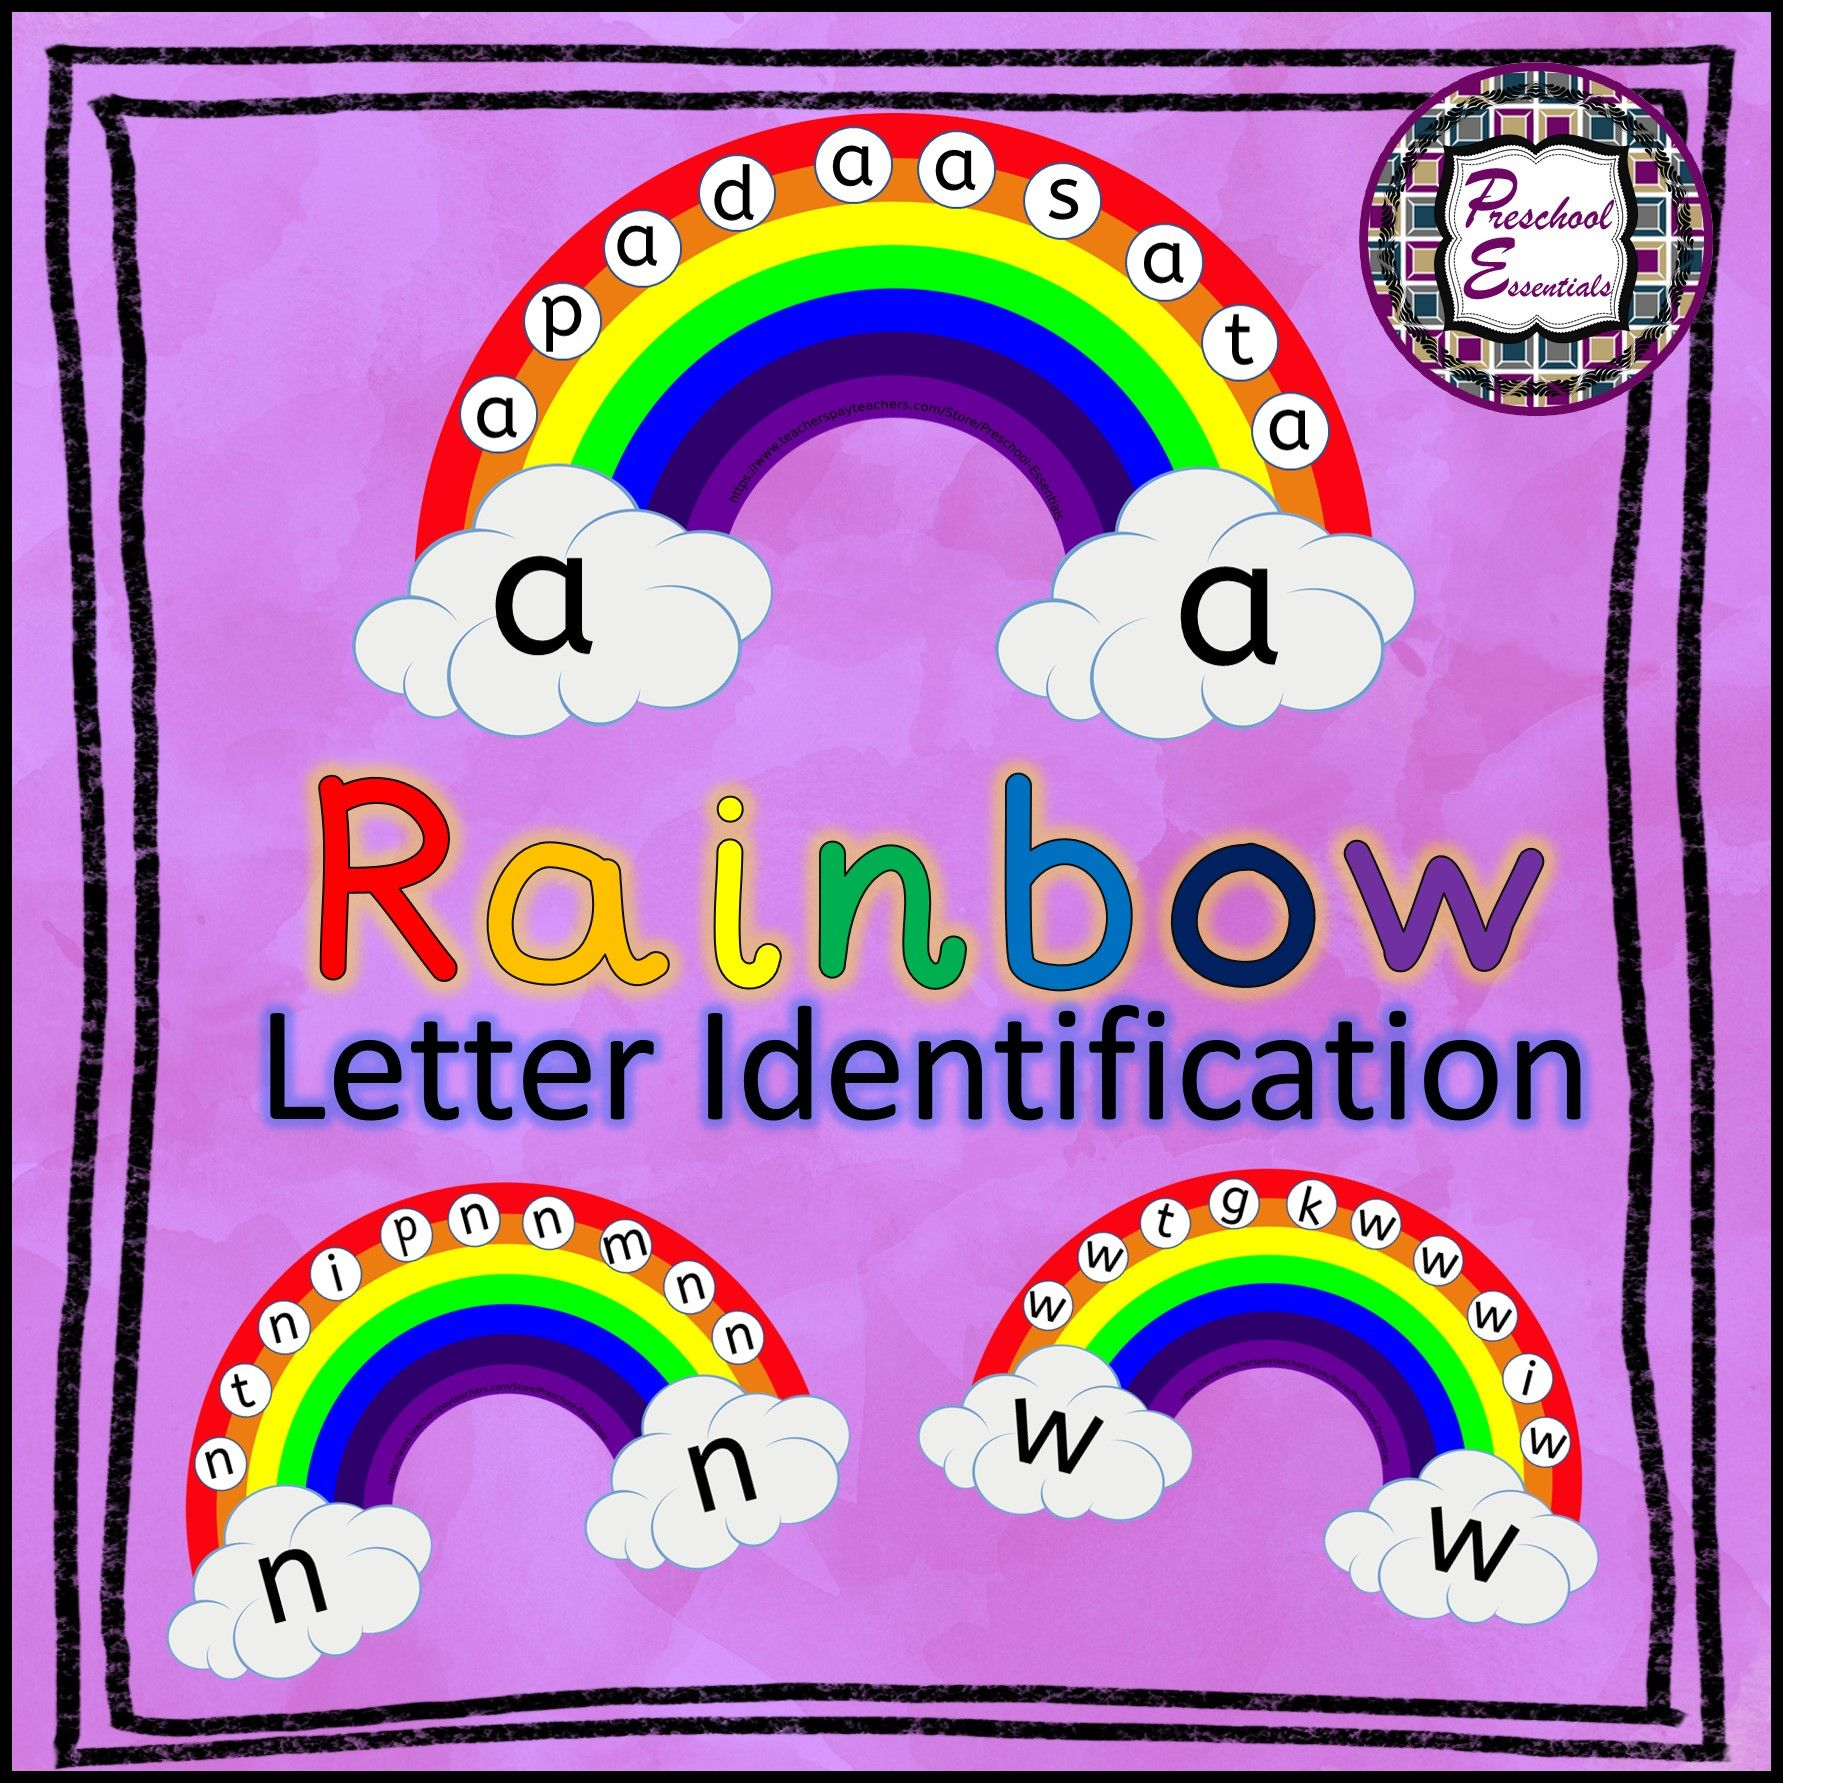 St Patrick S Day Rainbow Letter Identification In